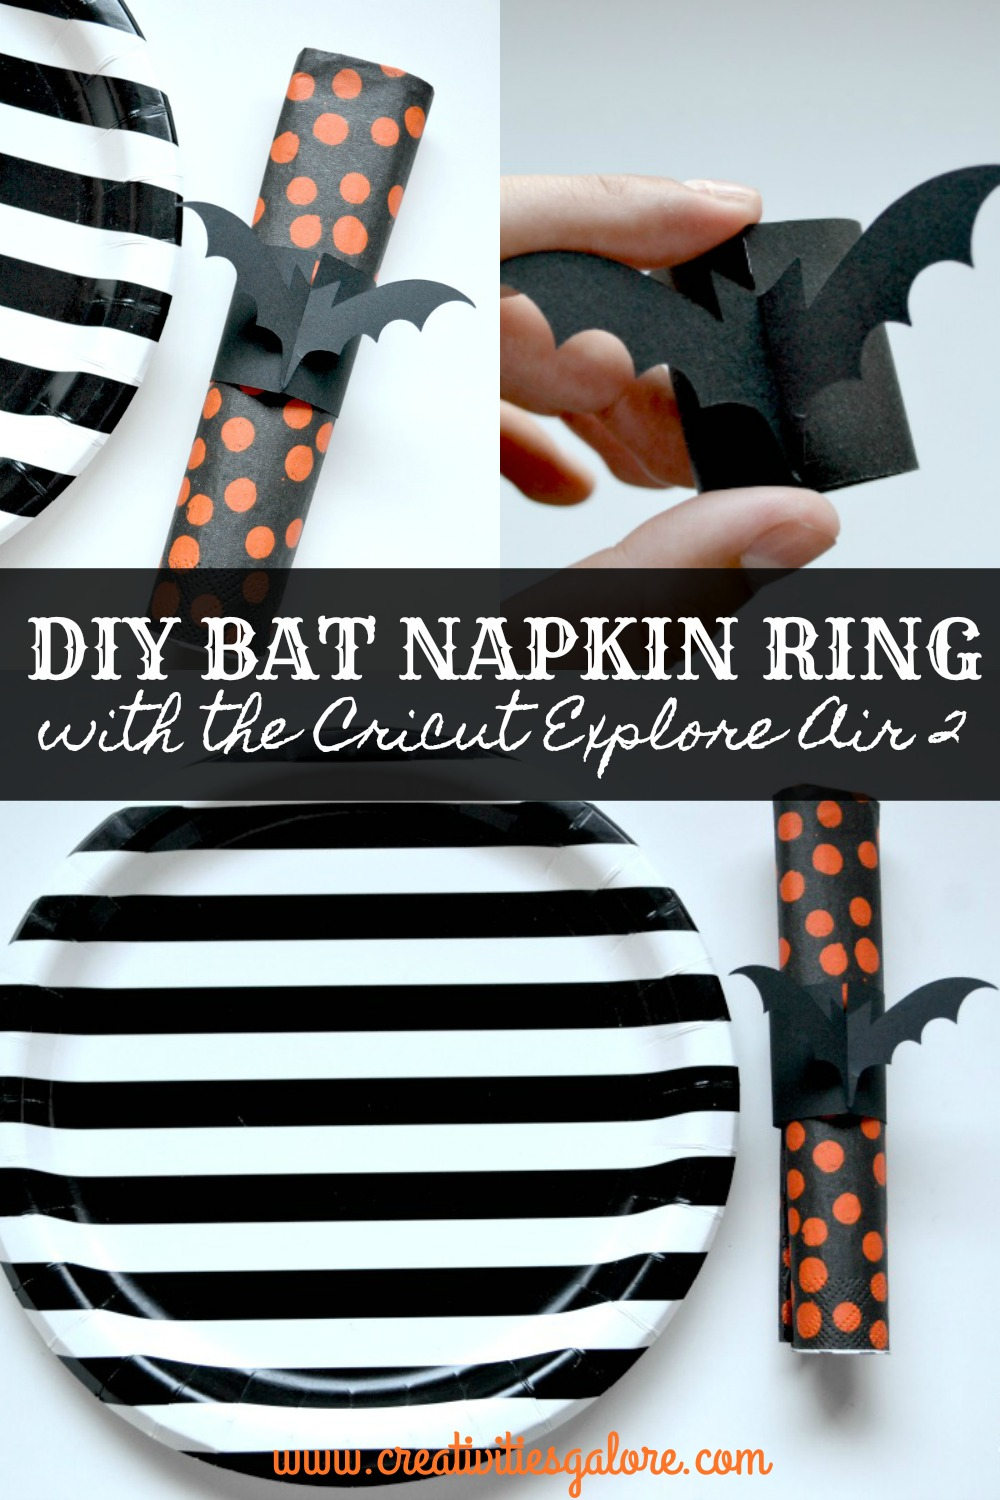 DIY Bat Napkin Ring